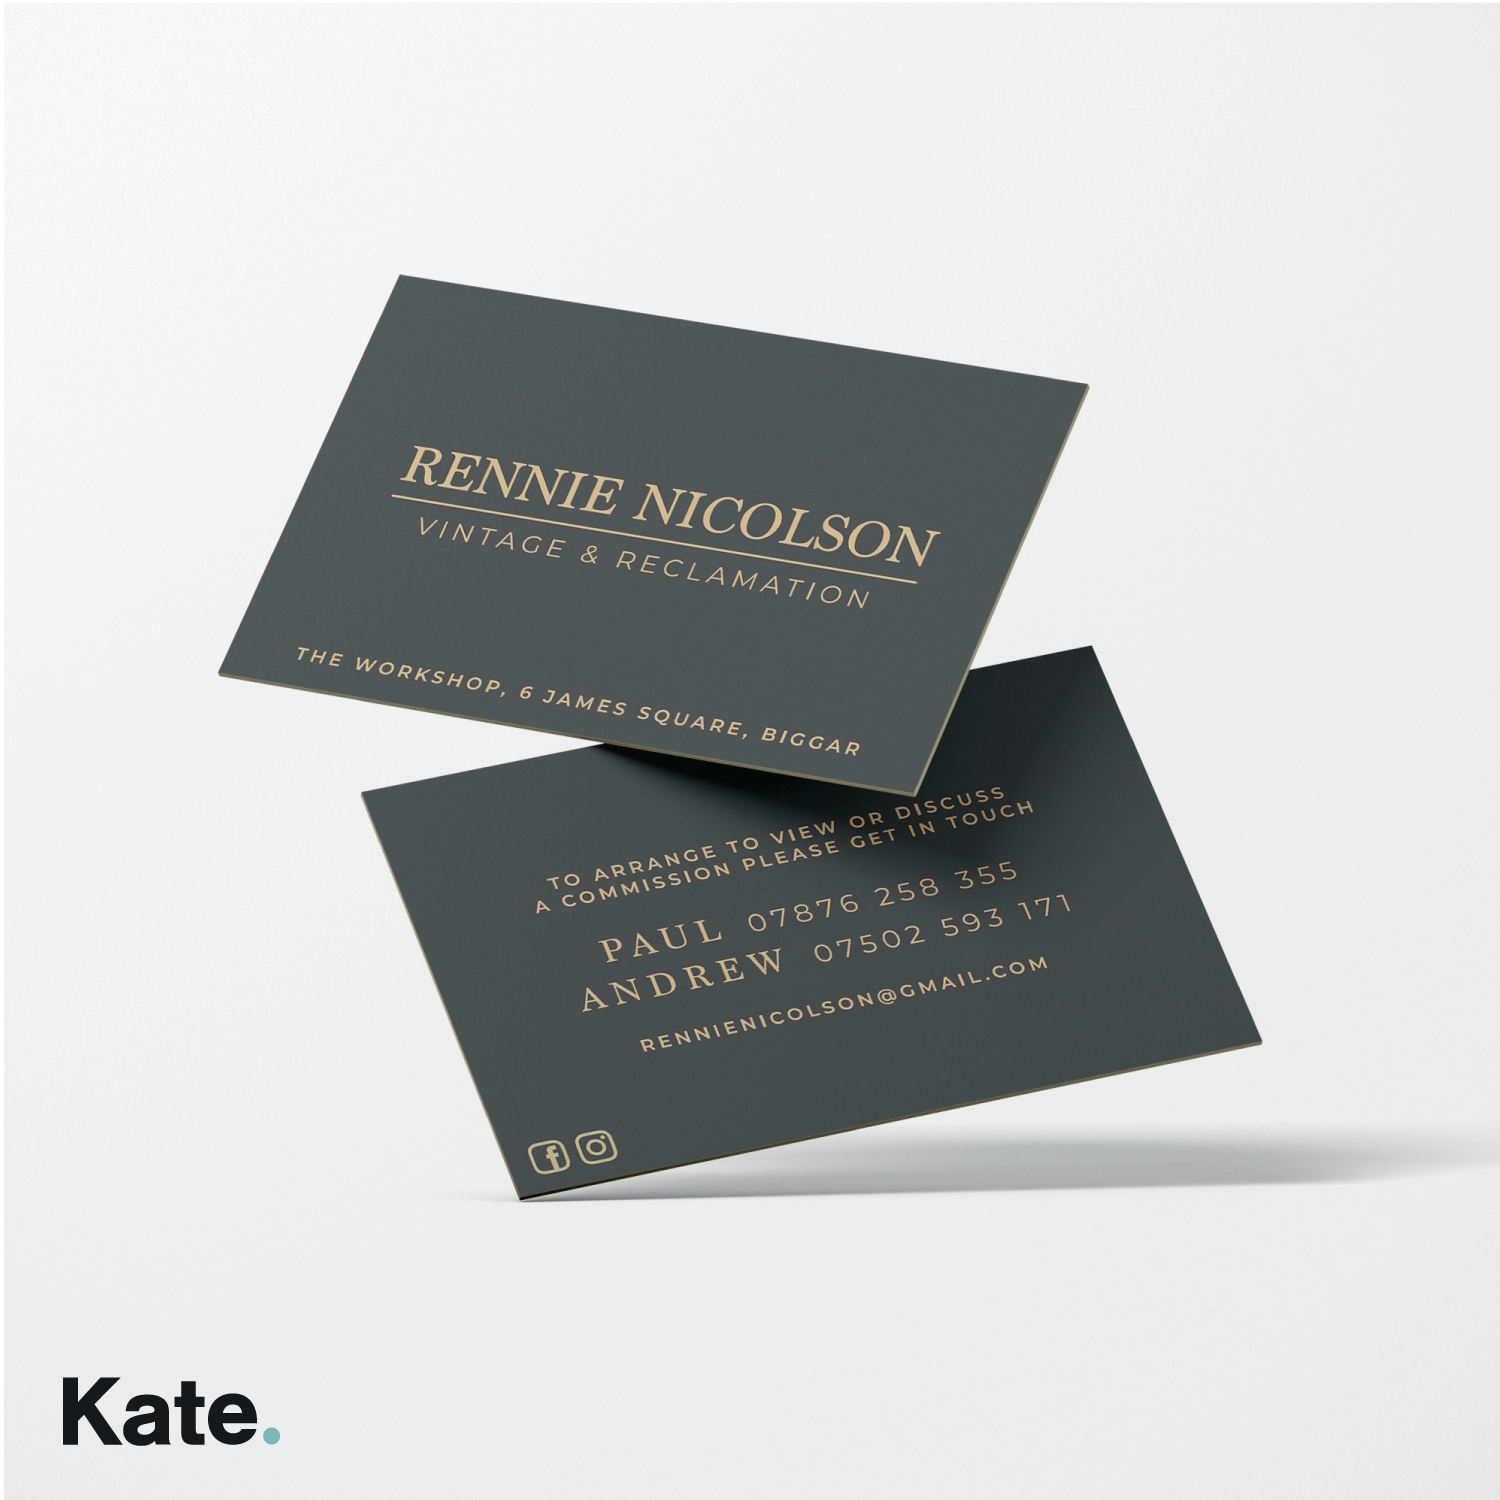 Rennie Nicolson Business cards